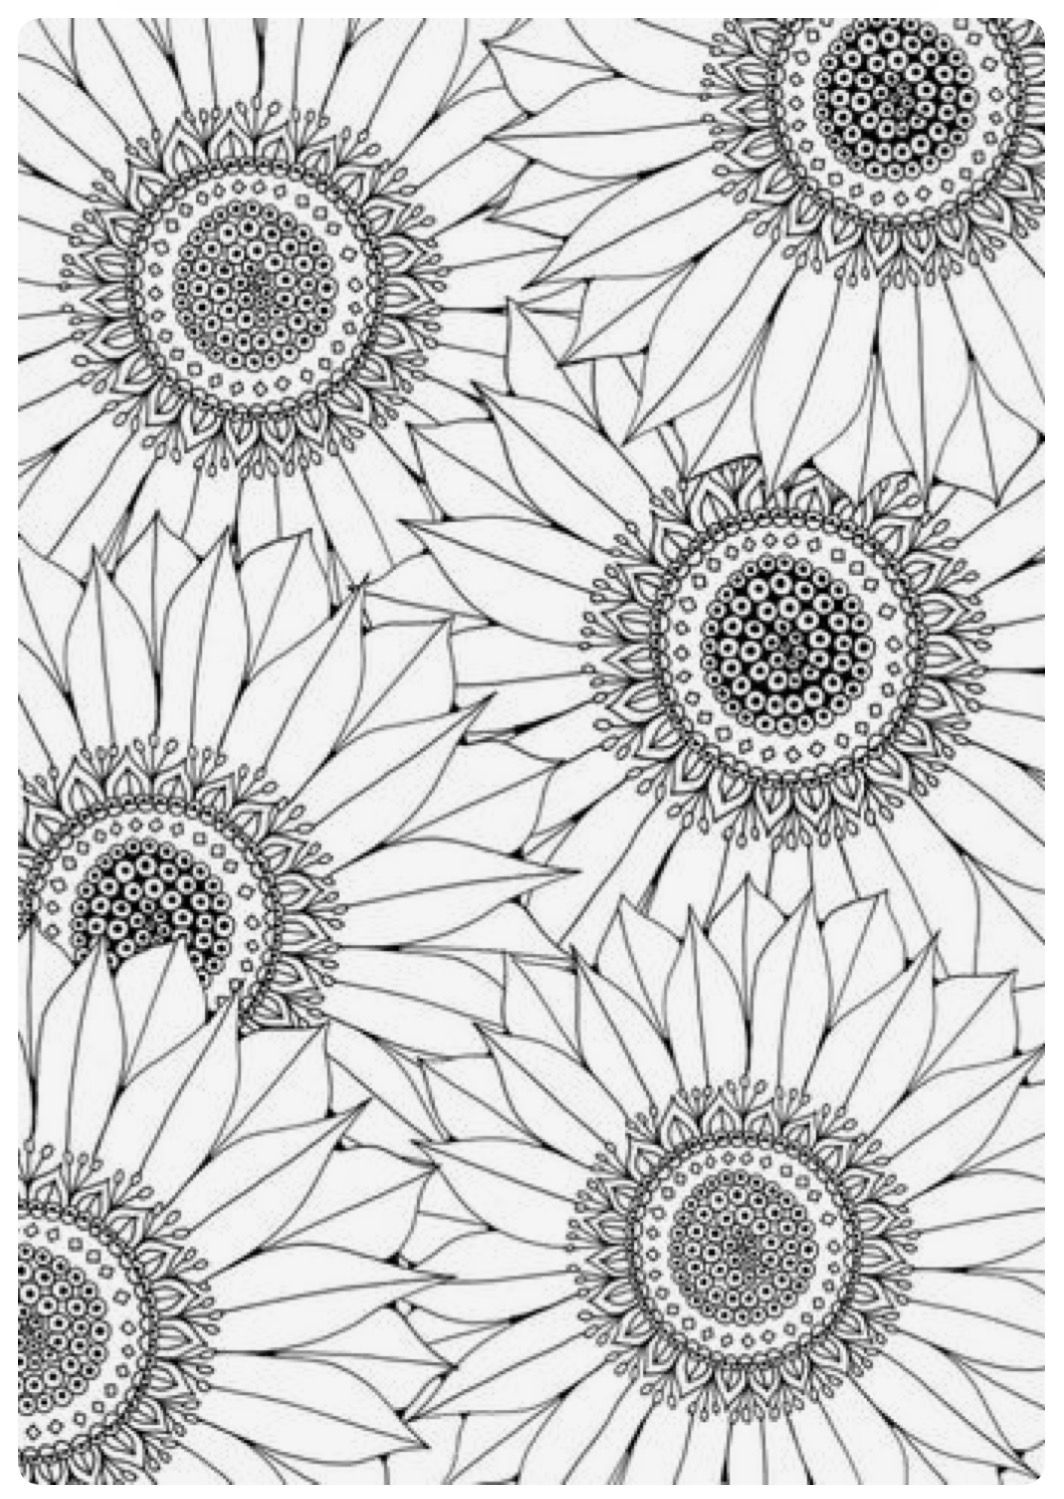 Sunflower Coloring Page Sunflower Coloring Pages Adult Coloring